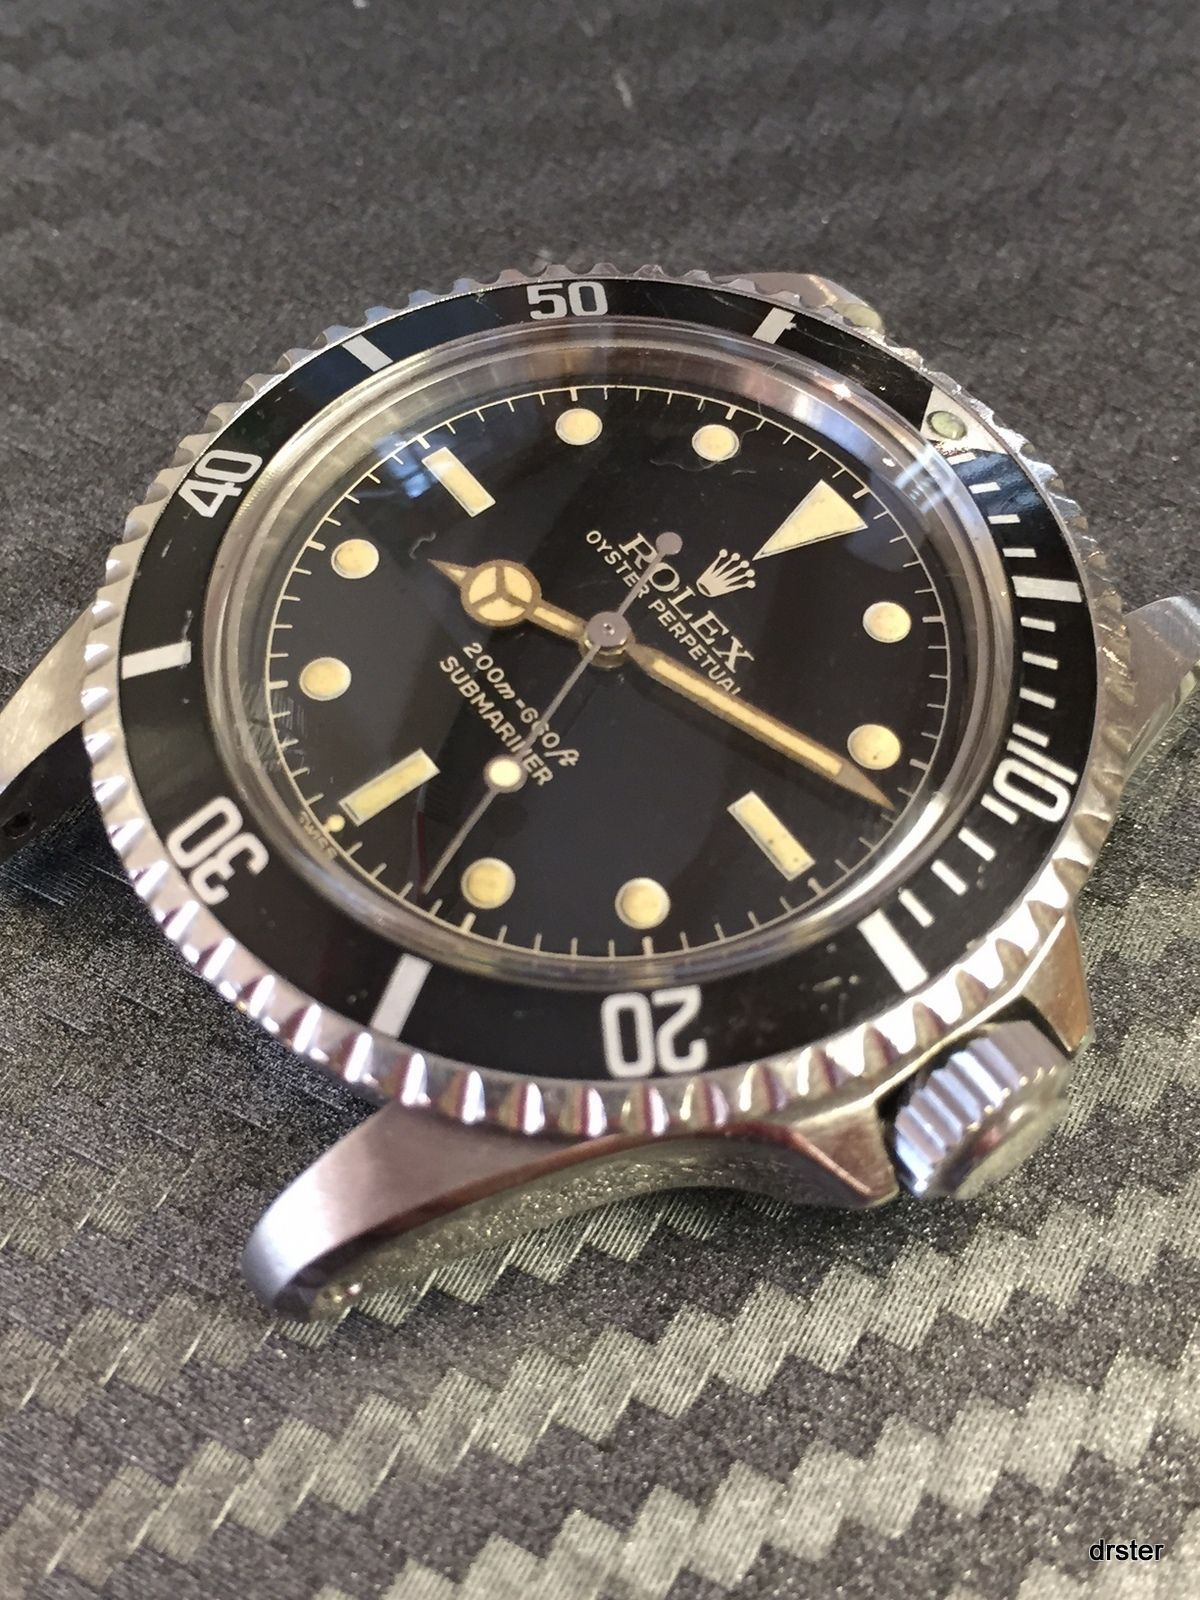 Rolex Vintage Submariner 5512 Gilt Dial Pointed Crown Guards 1961